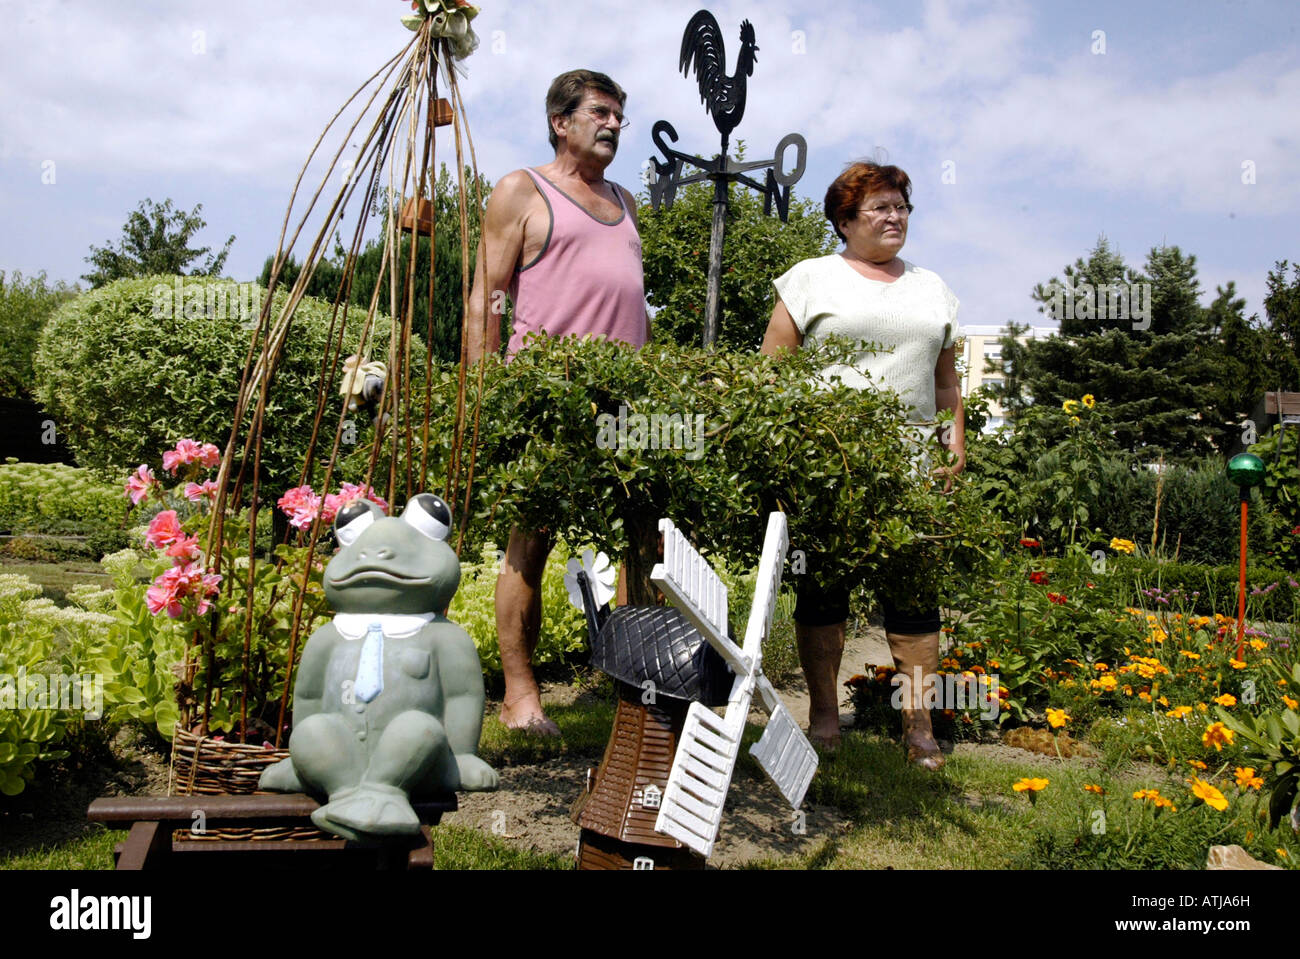 men and woman in an allotment garden - Stock Image